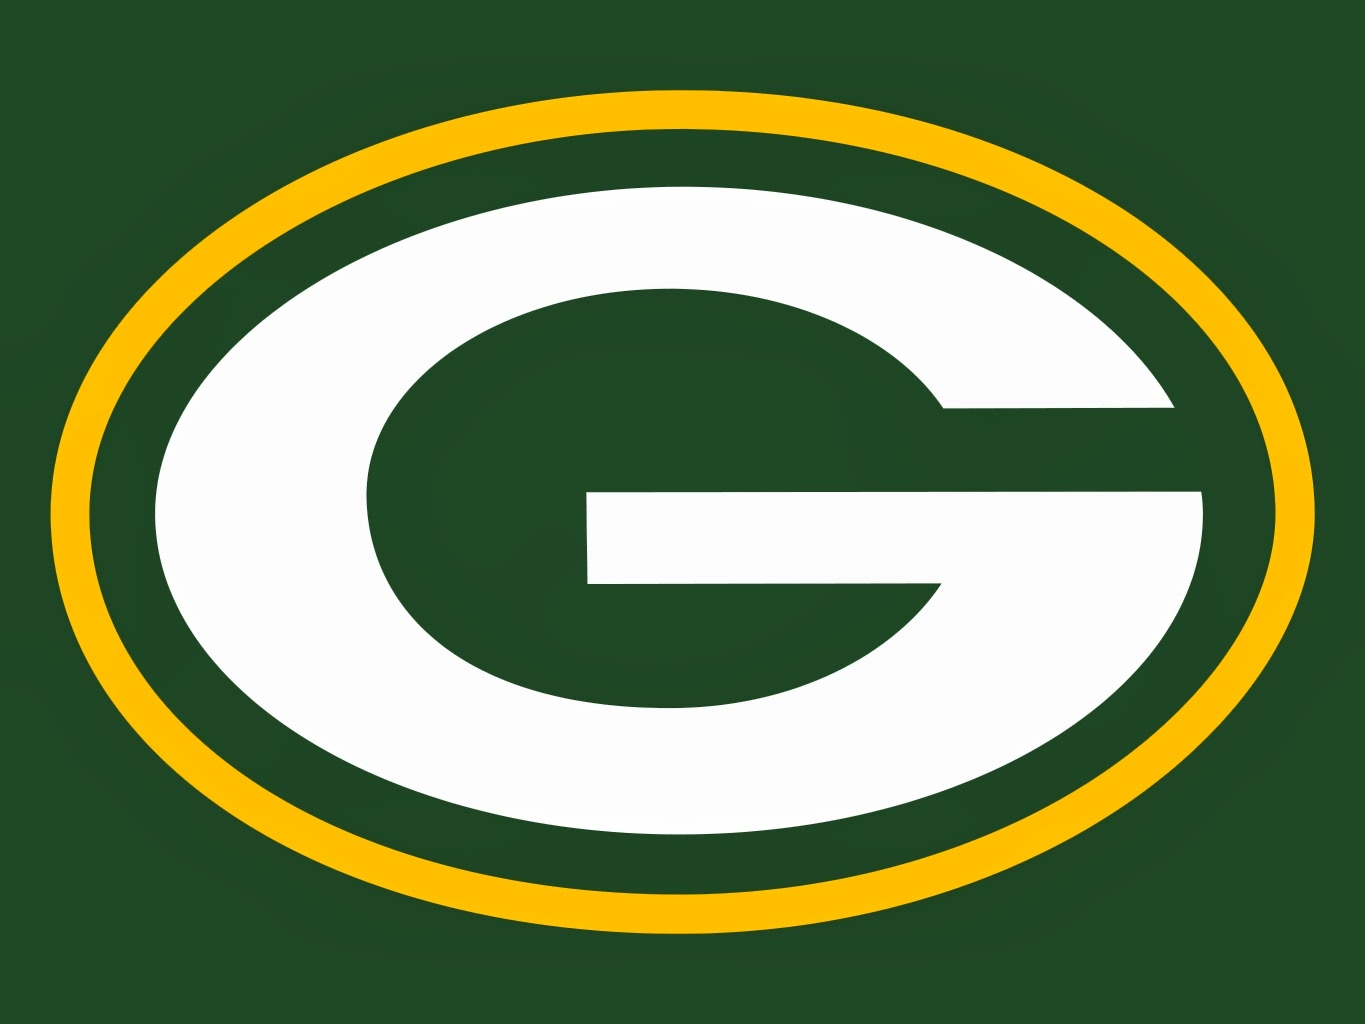 green bay packers - photo #13